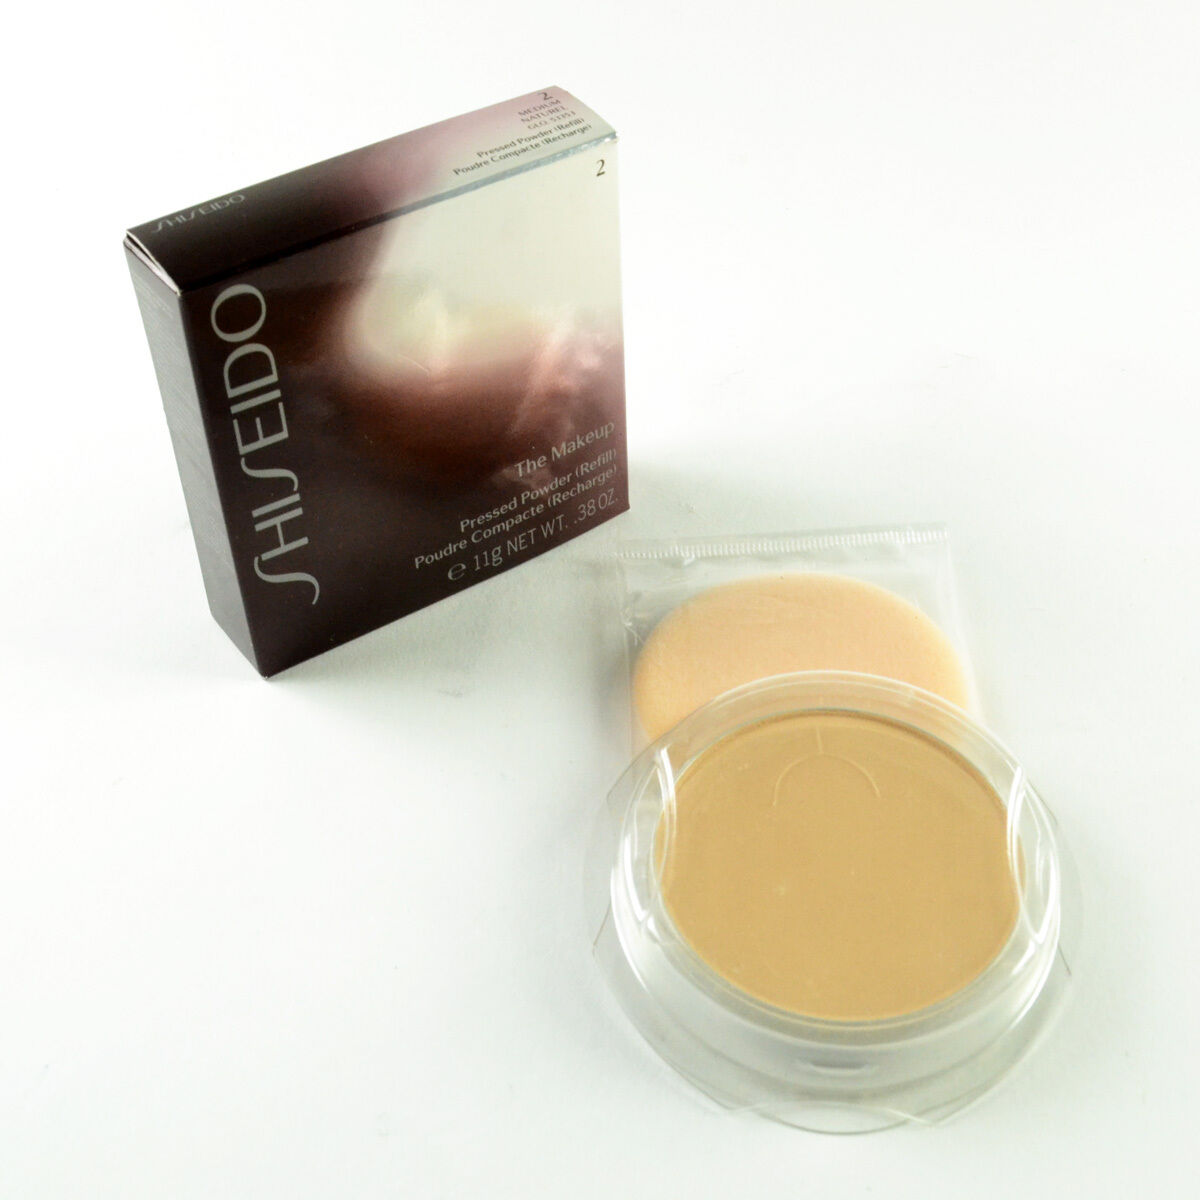 Shiseido The Makeup Pressed Powder Refill 2 Medium - Full Si